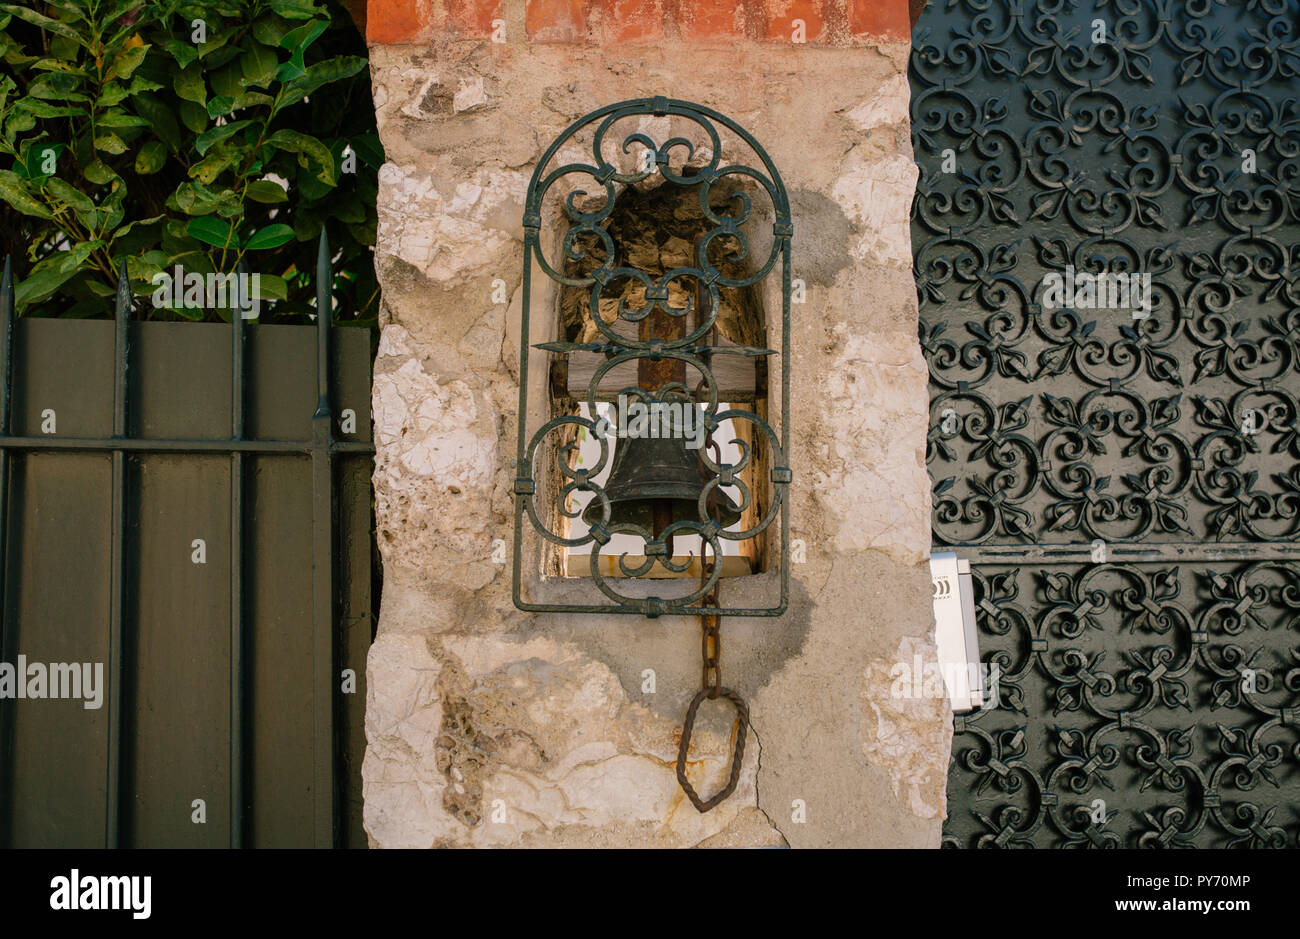 Vintage bell on the wall in the southern European city Stock Photo